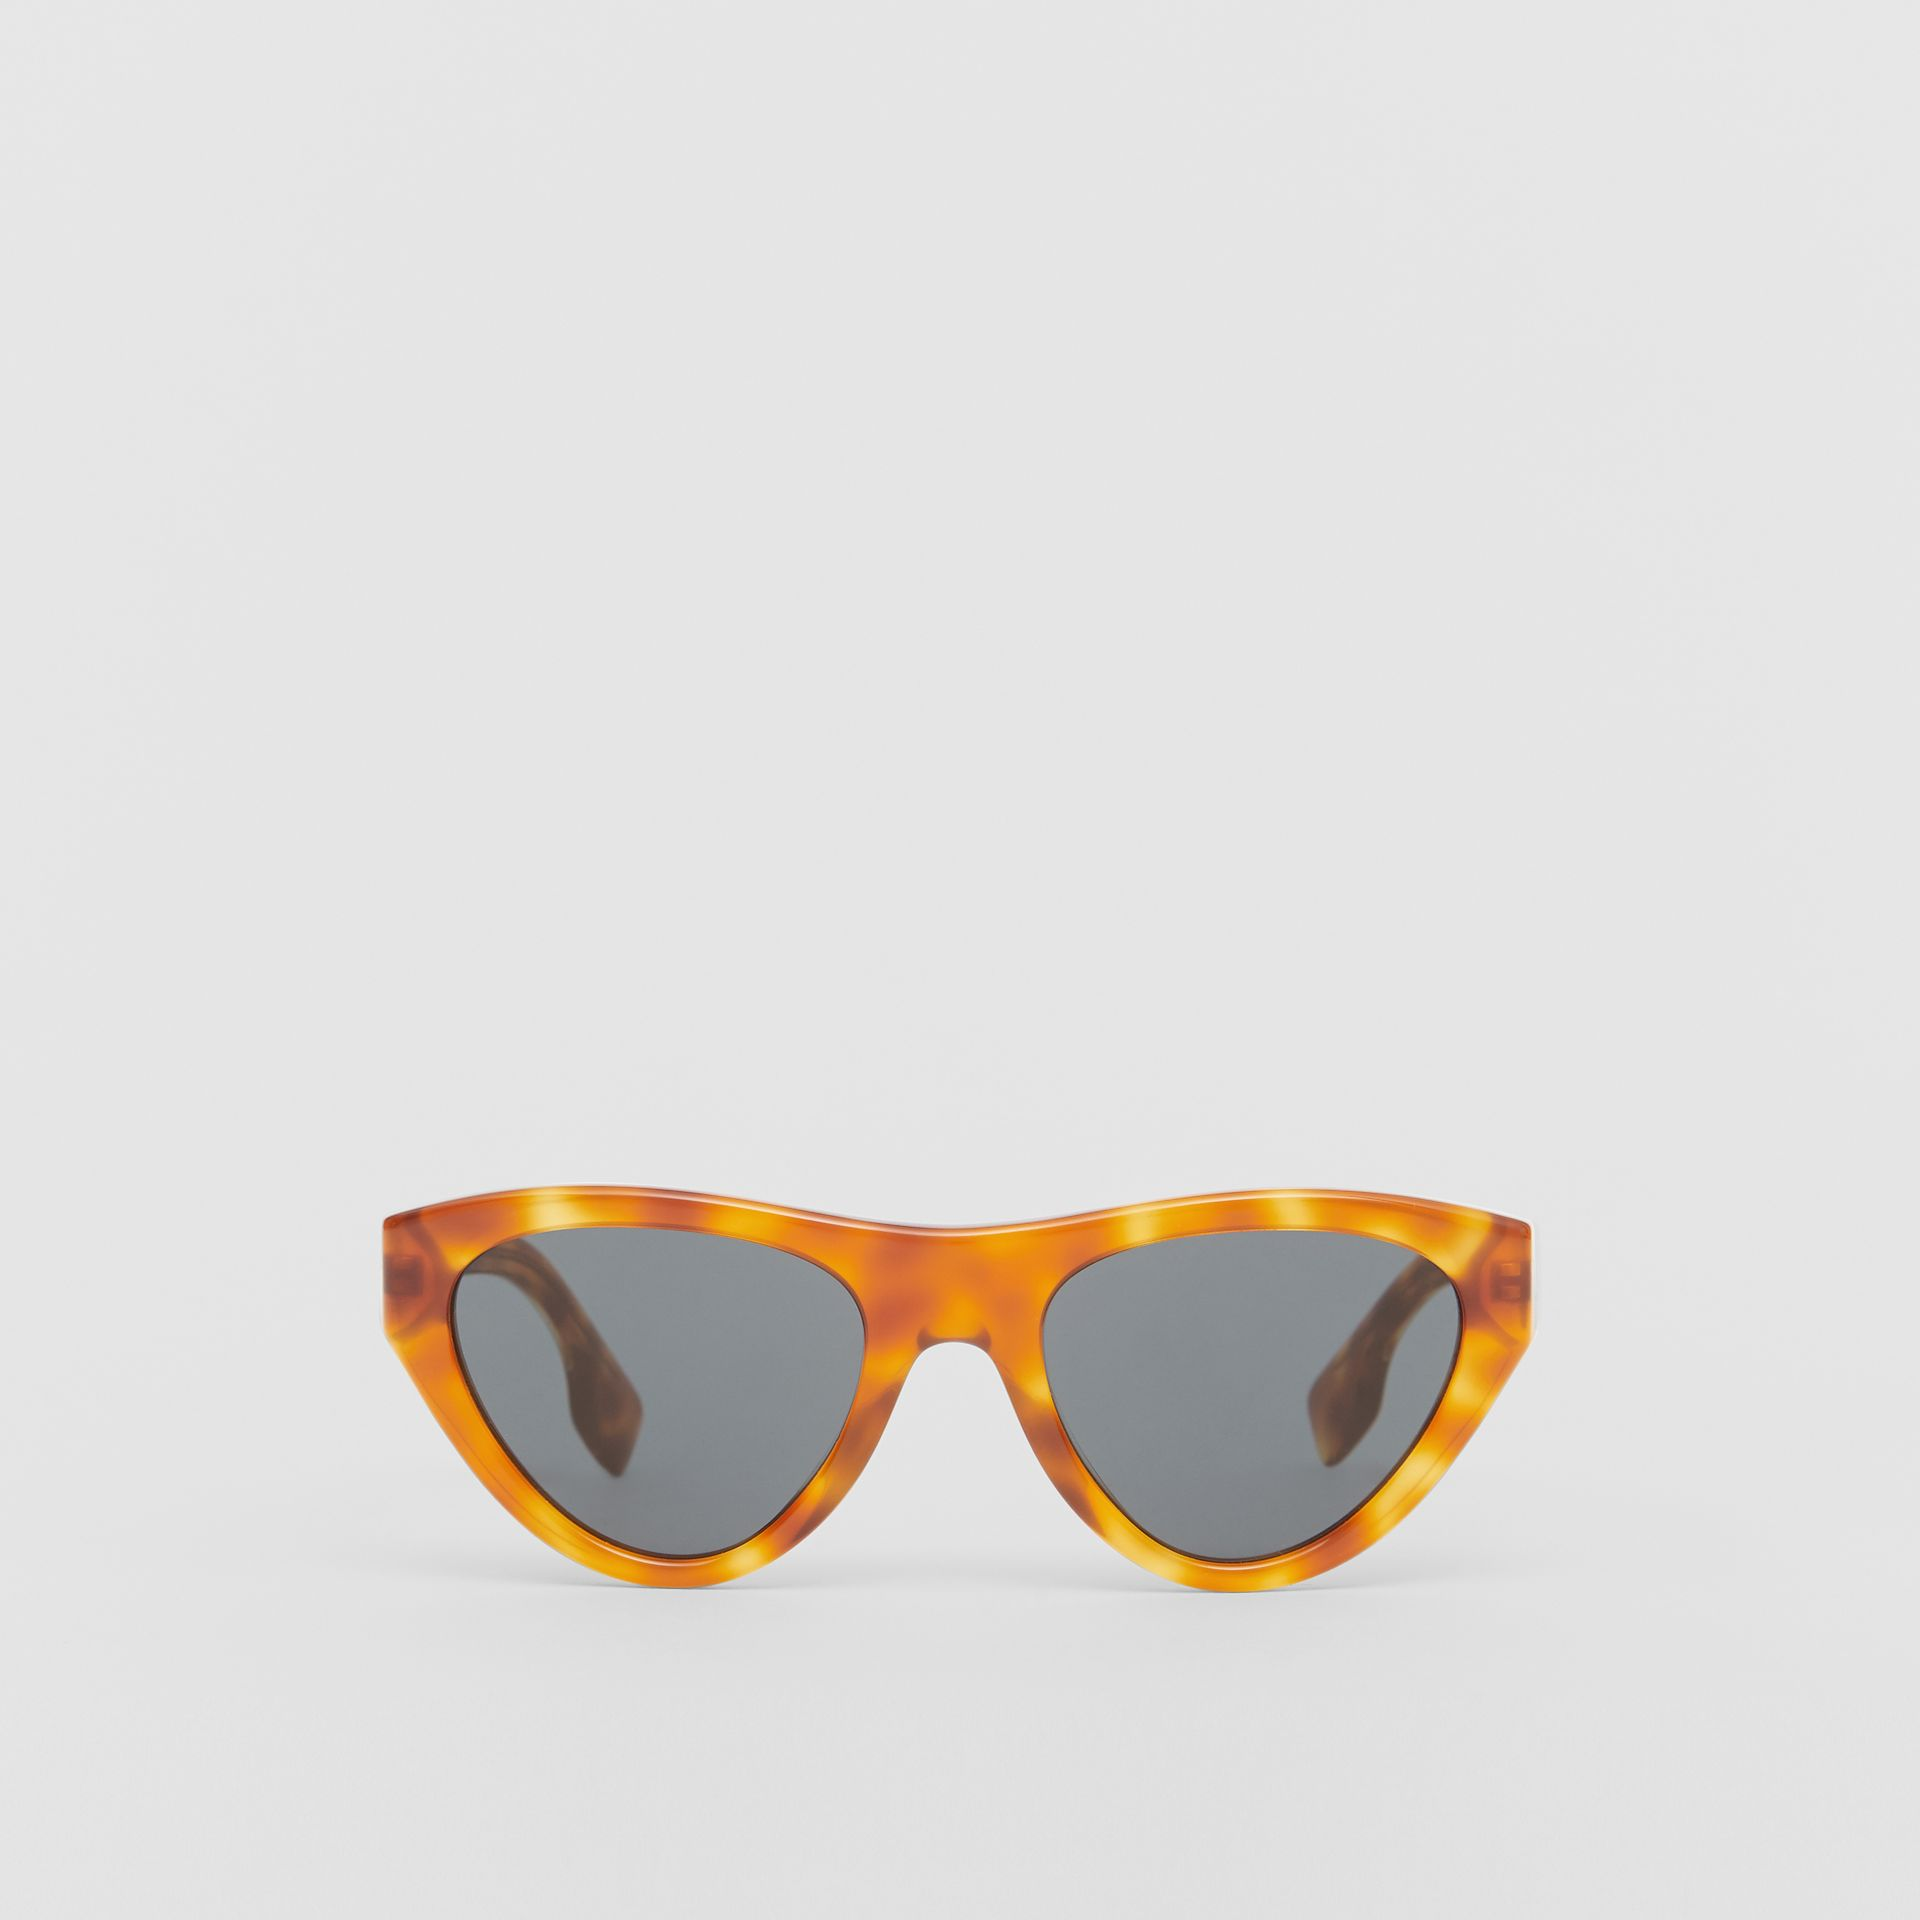 Triangular Frame Sunglasses in Amber Tortoiseshell - Women | Burberry - gallery image 0